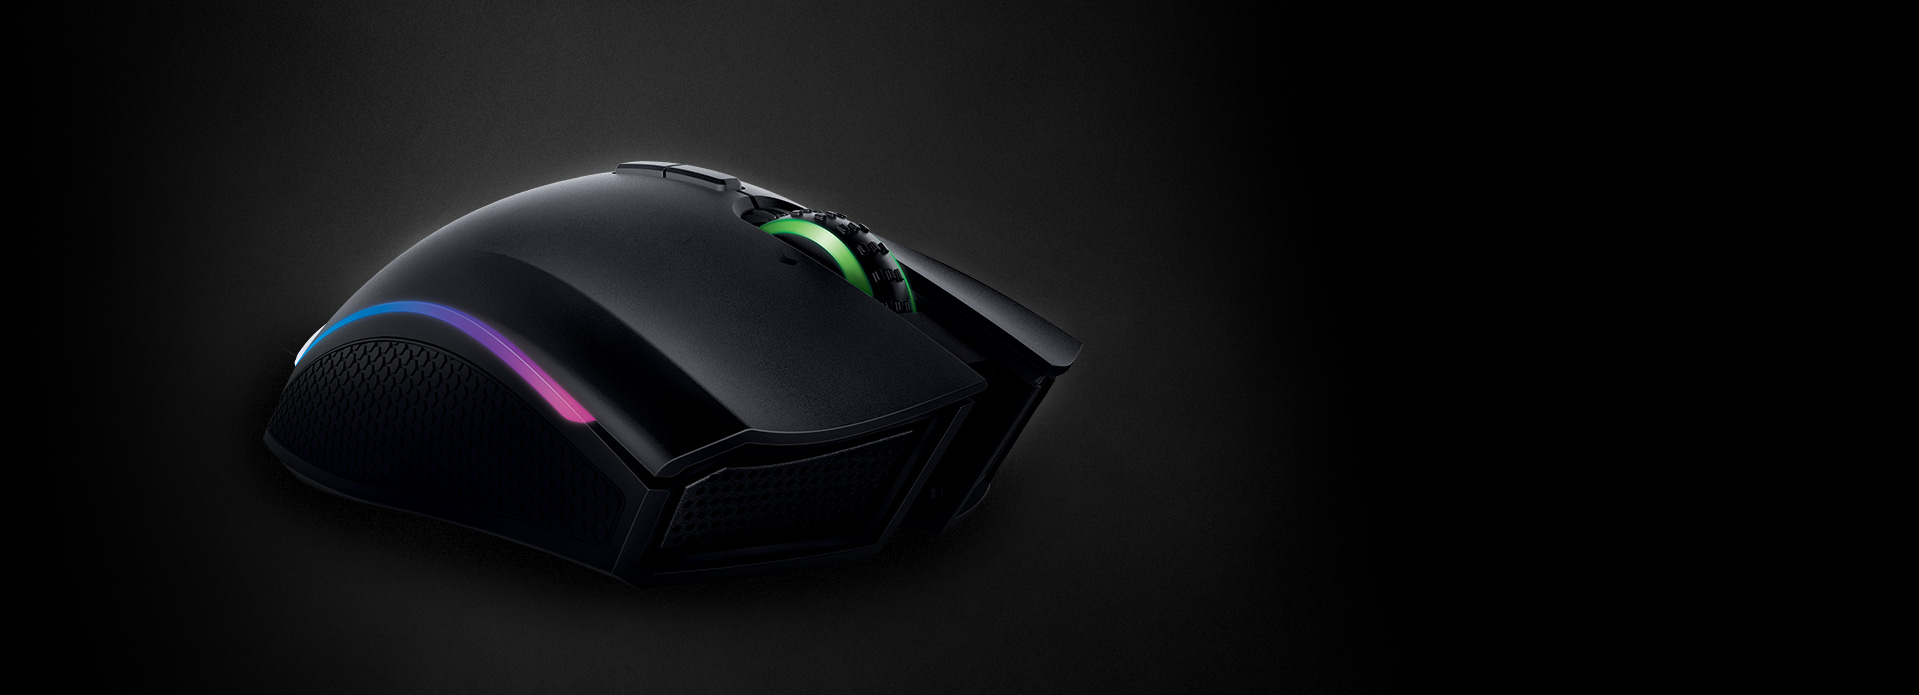 how to change razer mamba color